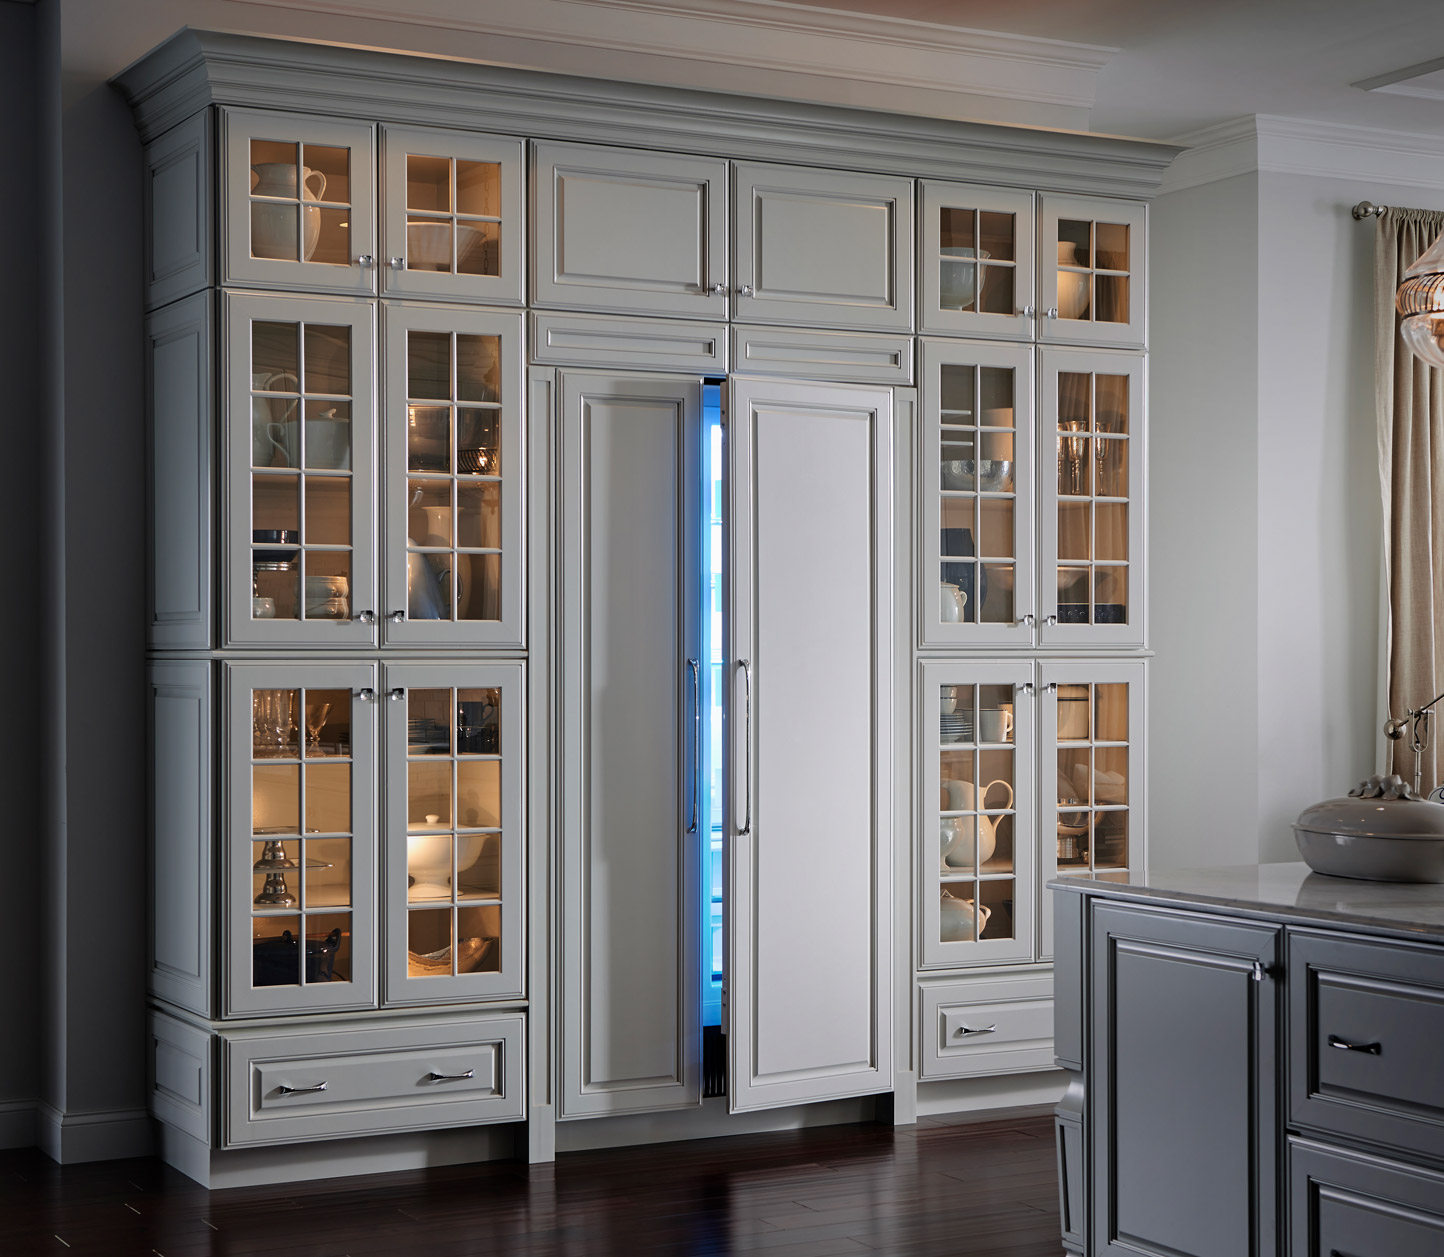 Charmant Column Refrigerators And Freezers The Newest Addition To Our Refrigeration  Family Offers Premium Features, Retrofit Capability, And A True Flush ...